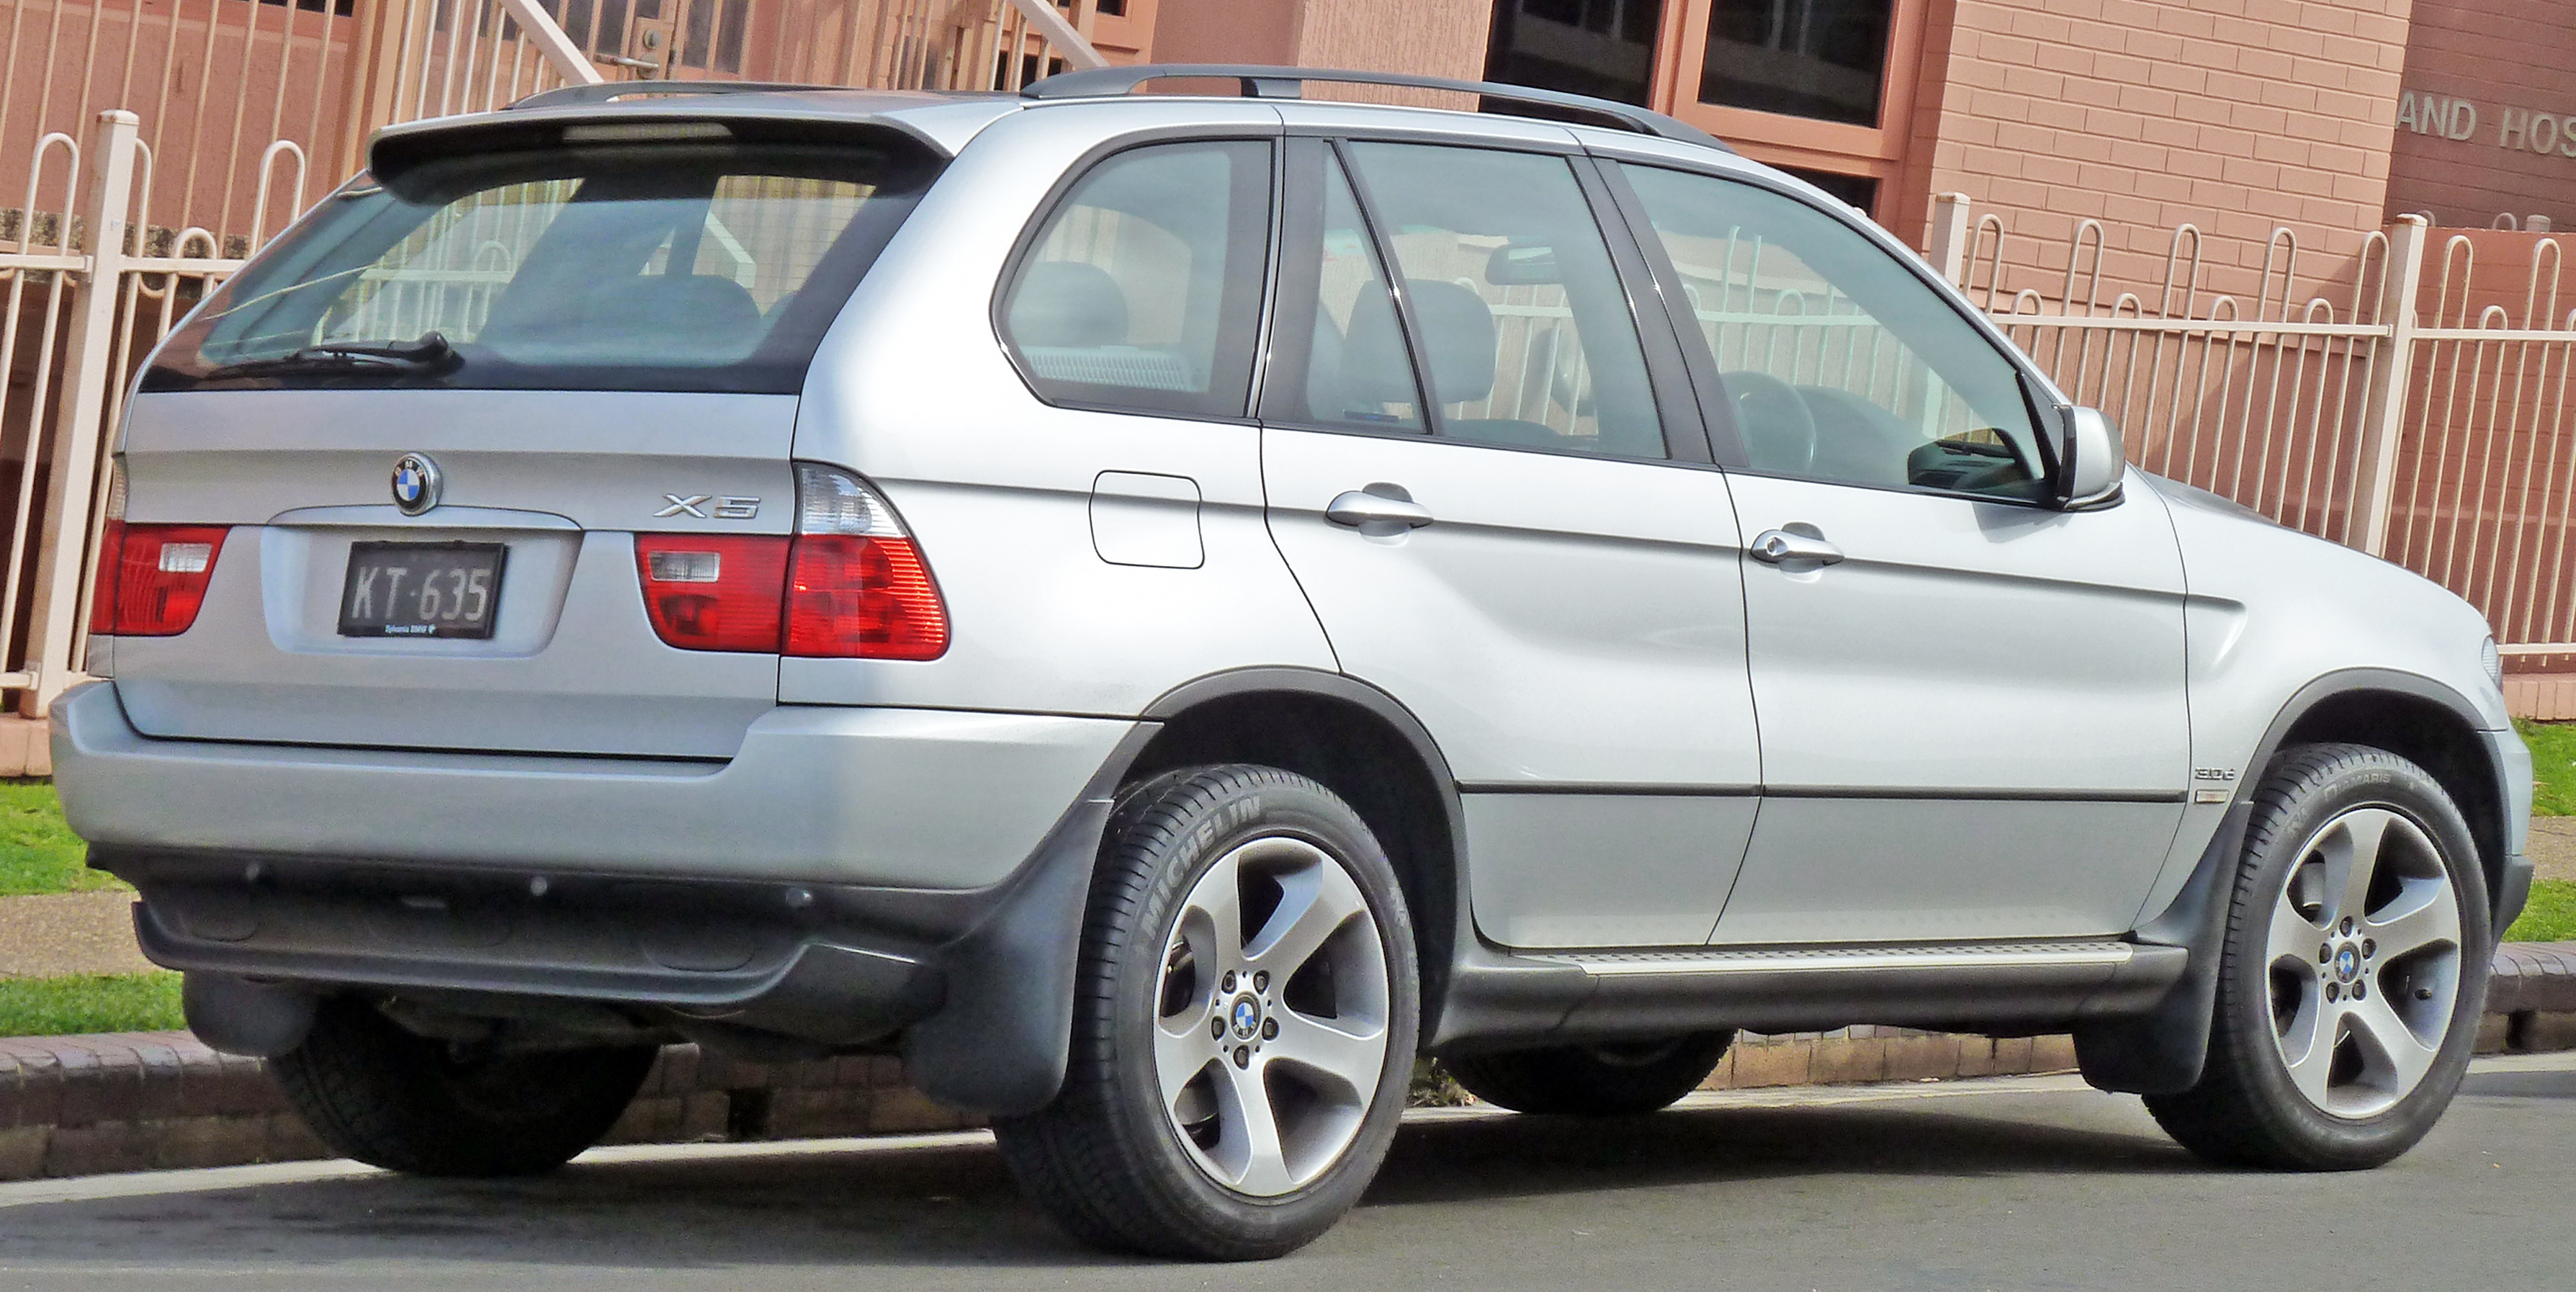 file:2003-2006 bmw x5 (e53) 3.0d 02 - wikimedia commons